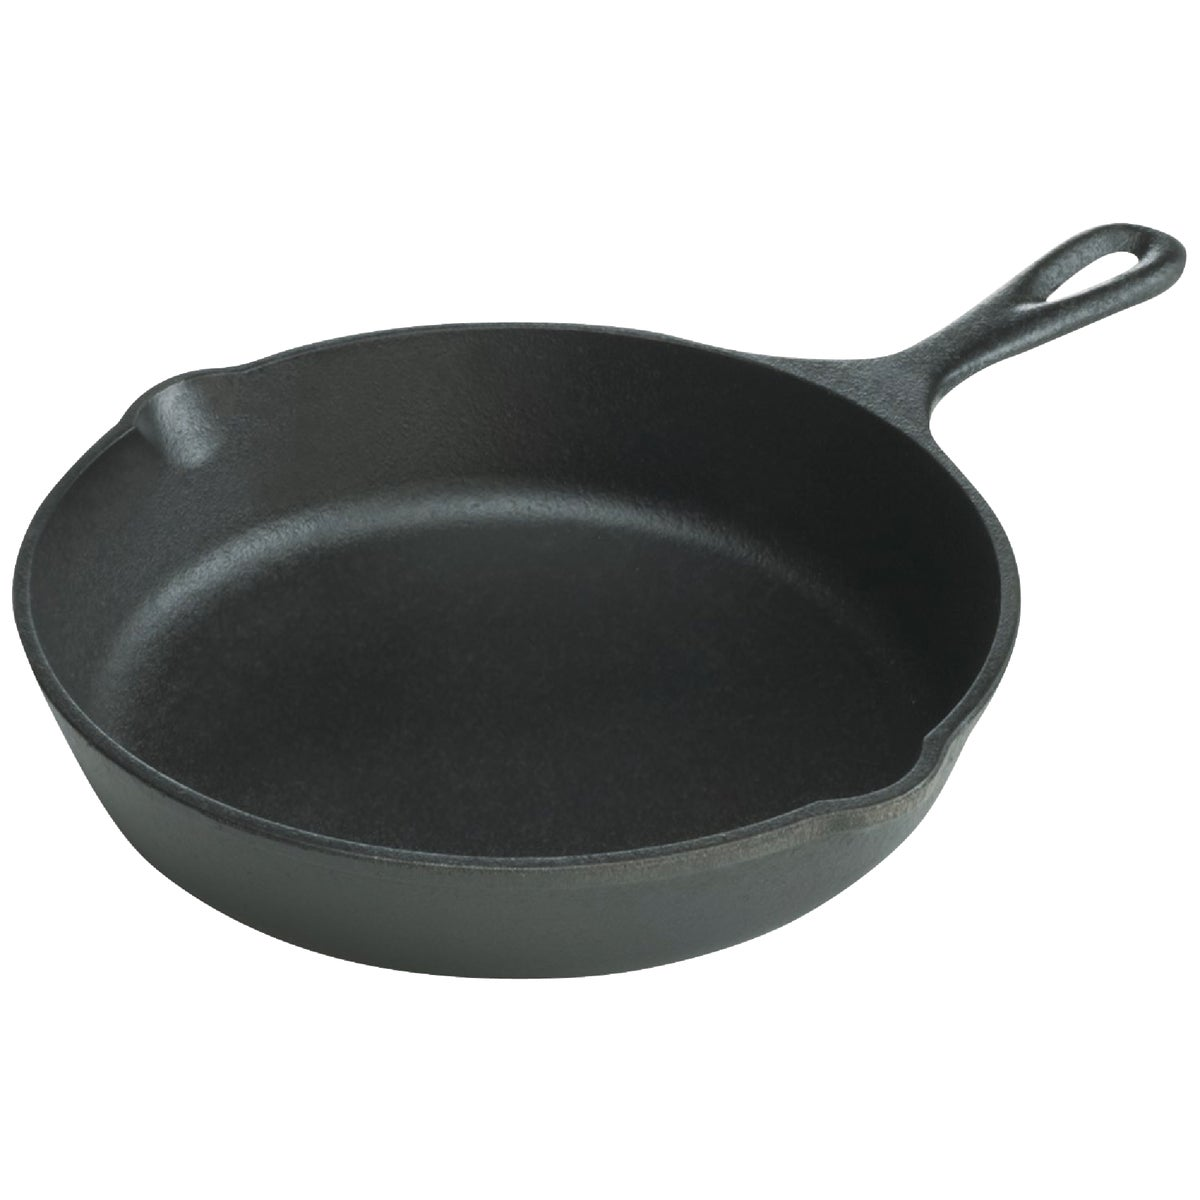 "6-1/2"" SKILLET - L3SK3 by Lodge Mfg Co"